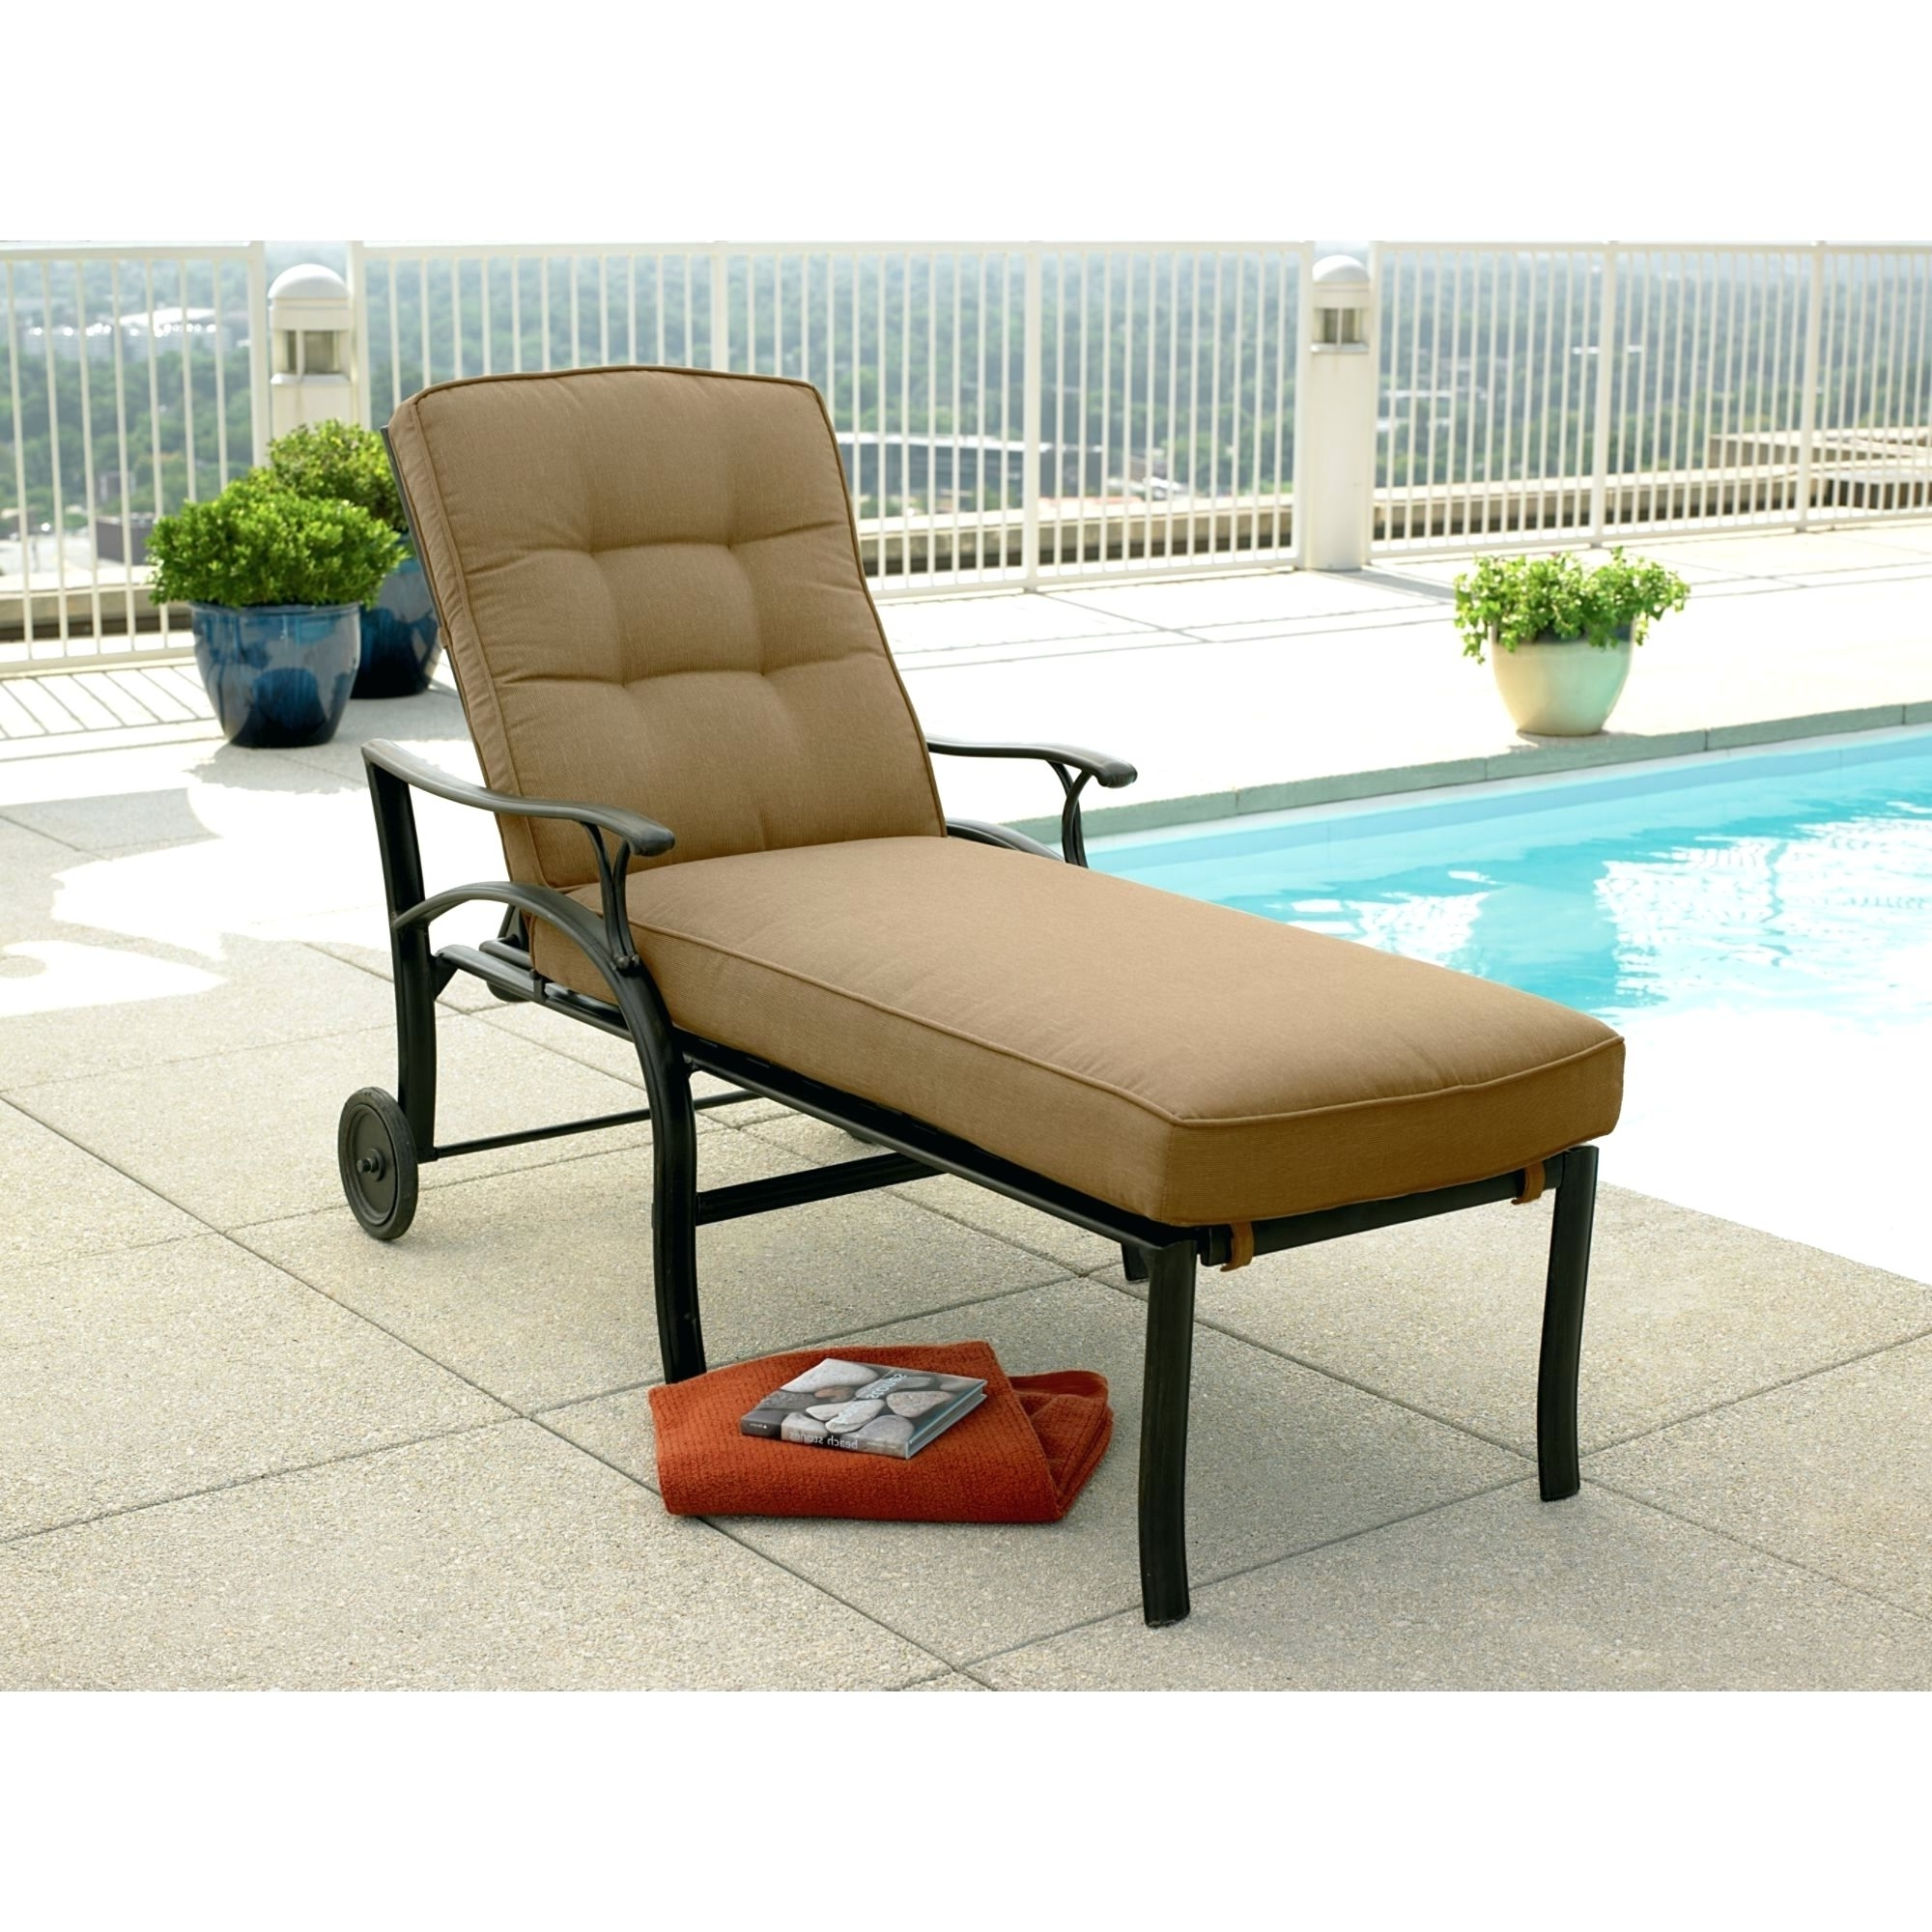 Chaise Lounge Chairs For Pool Area Intended For Widely Used Pool Deck Chaise Lounge Chairs • Lounge Chairs Ideas (View 3 of 15)